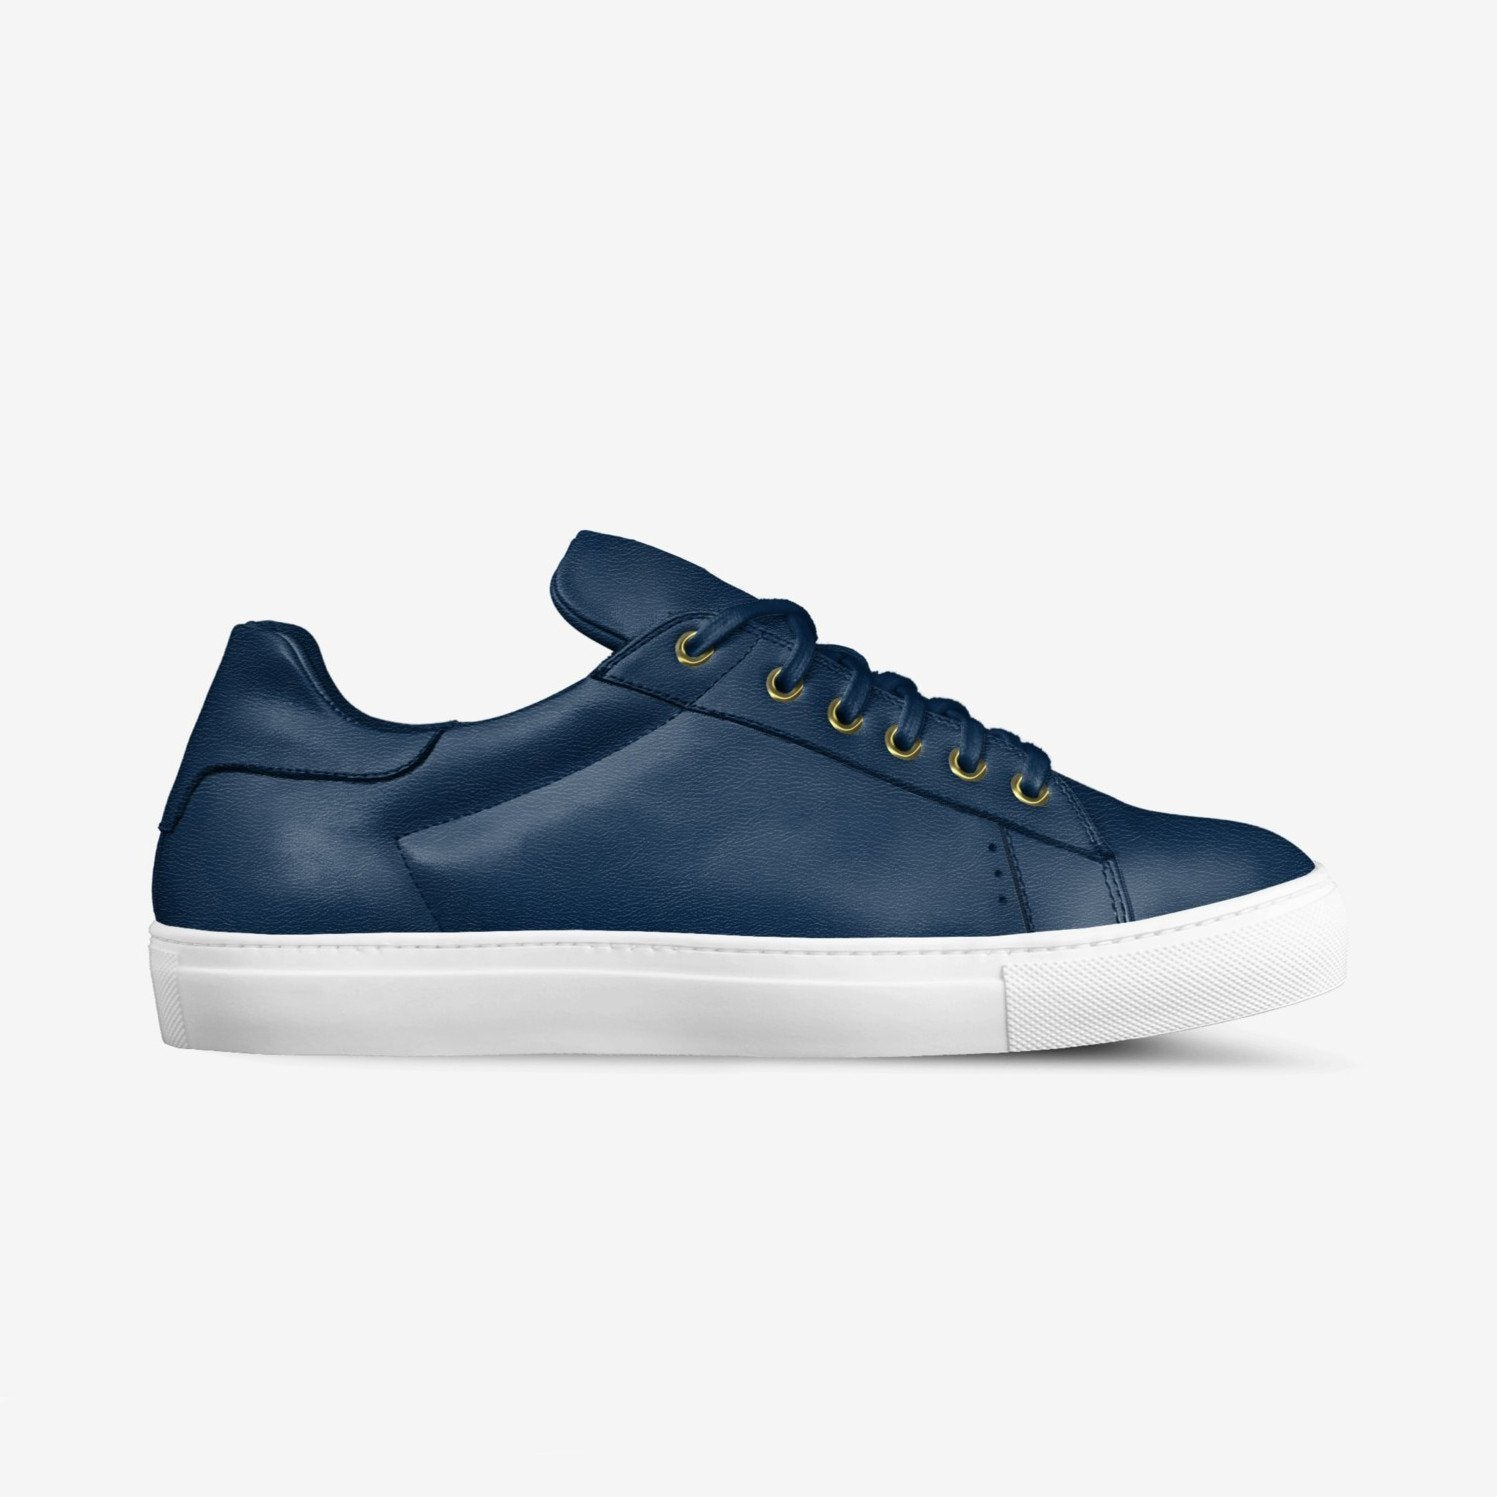 LORENZO LEATHER SNEAKERS IN MIDNIGHT BLUE | Poor Little Rich Boy Clothing